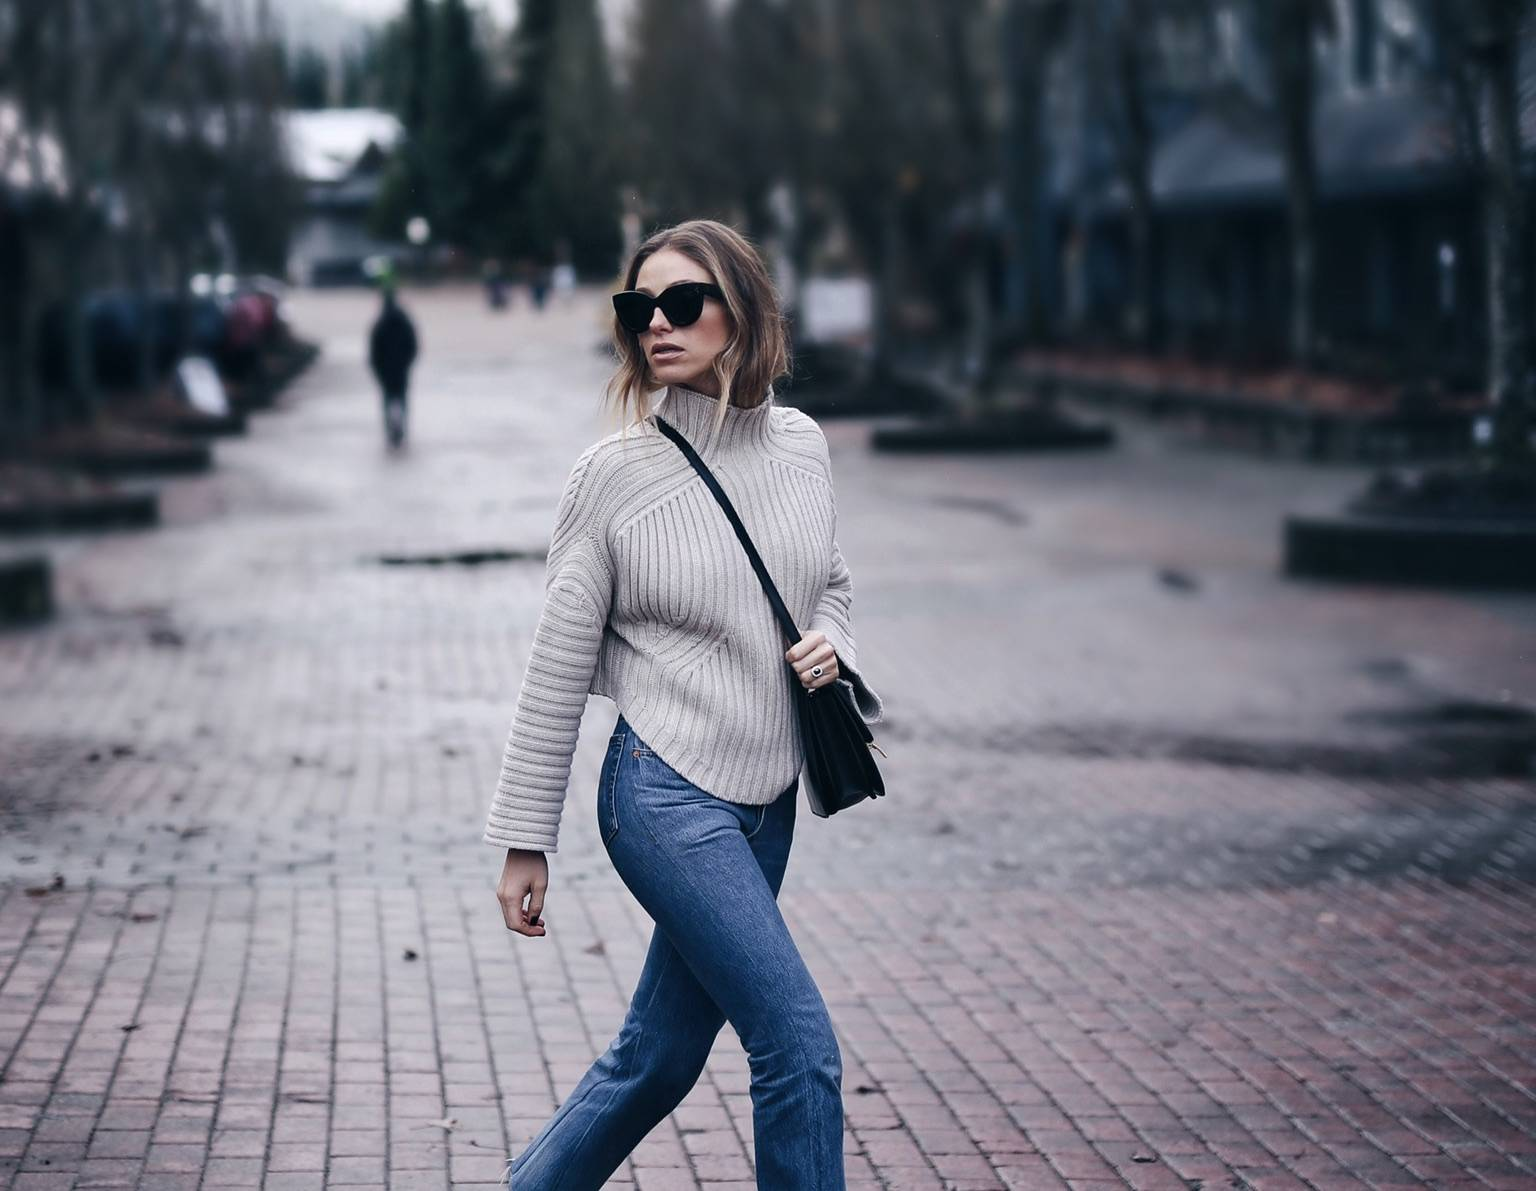 fi-Style and beauty blogger Jill Lansky of The August Diaries Whistler travel diary in redone jeans, turtleneck and Celine box bag